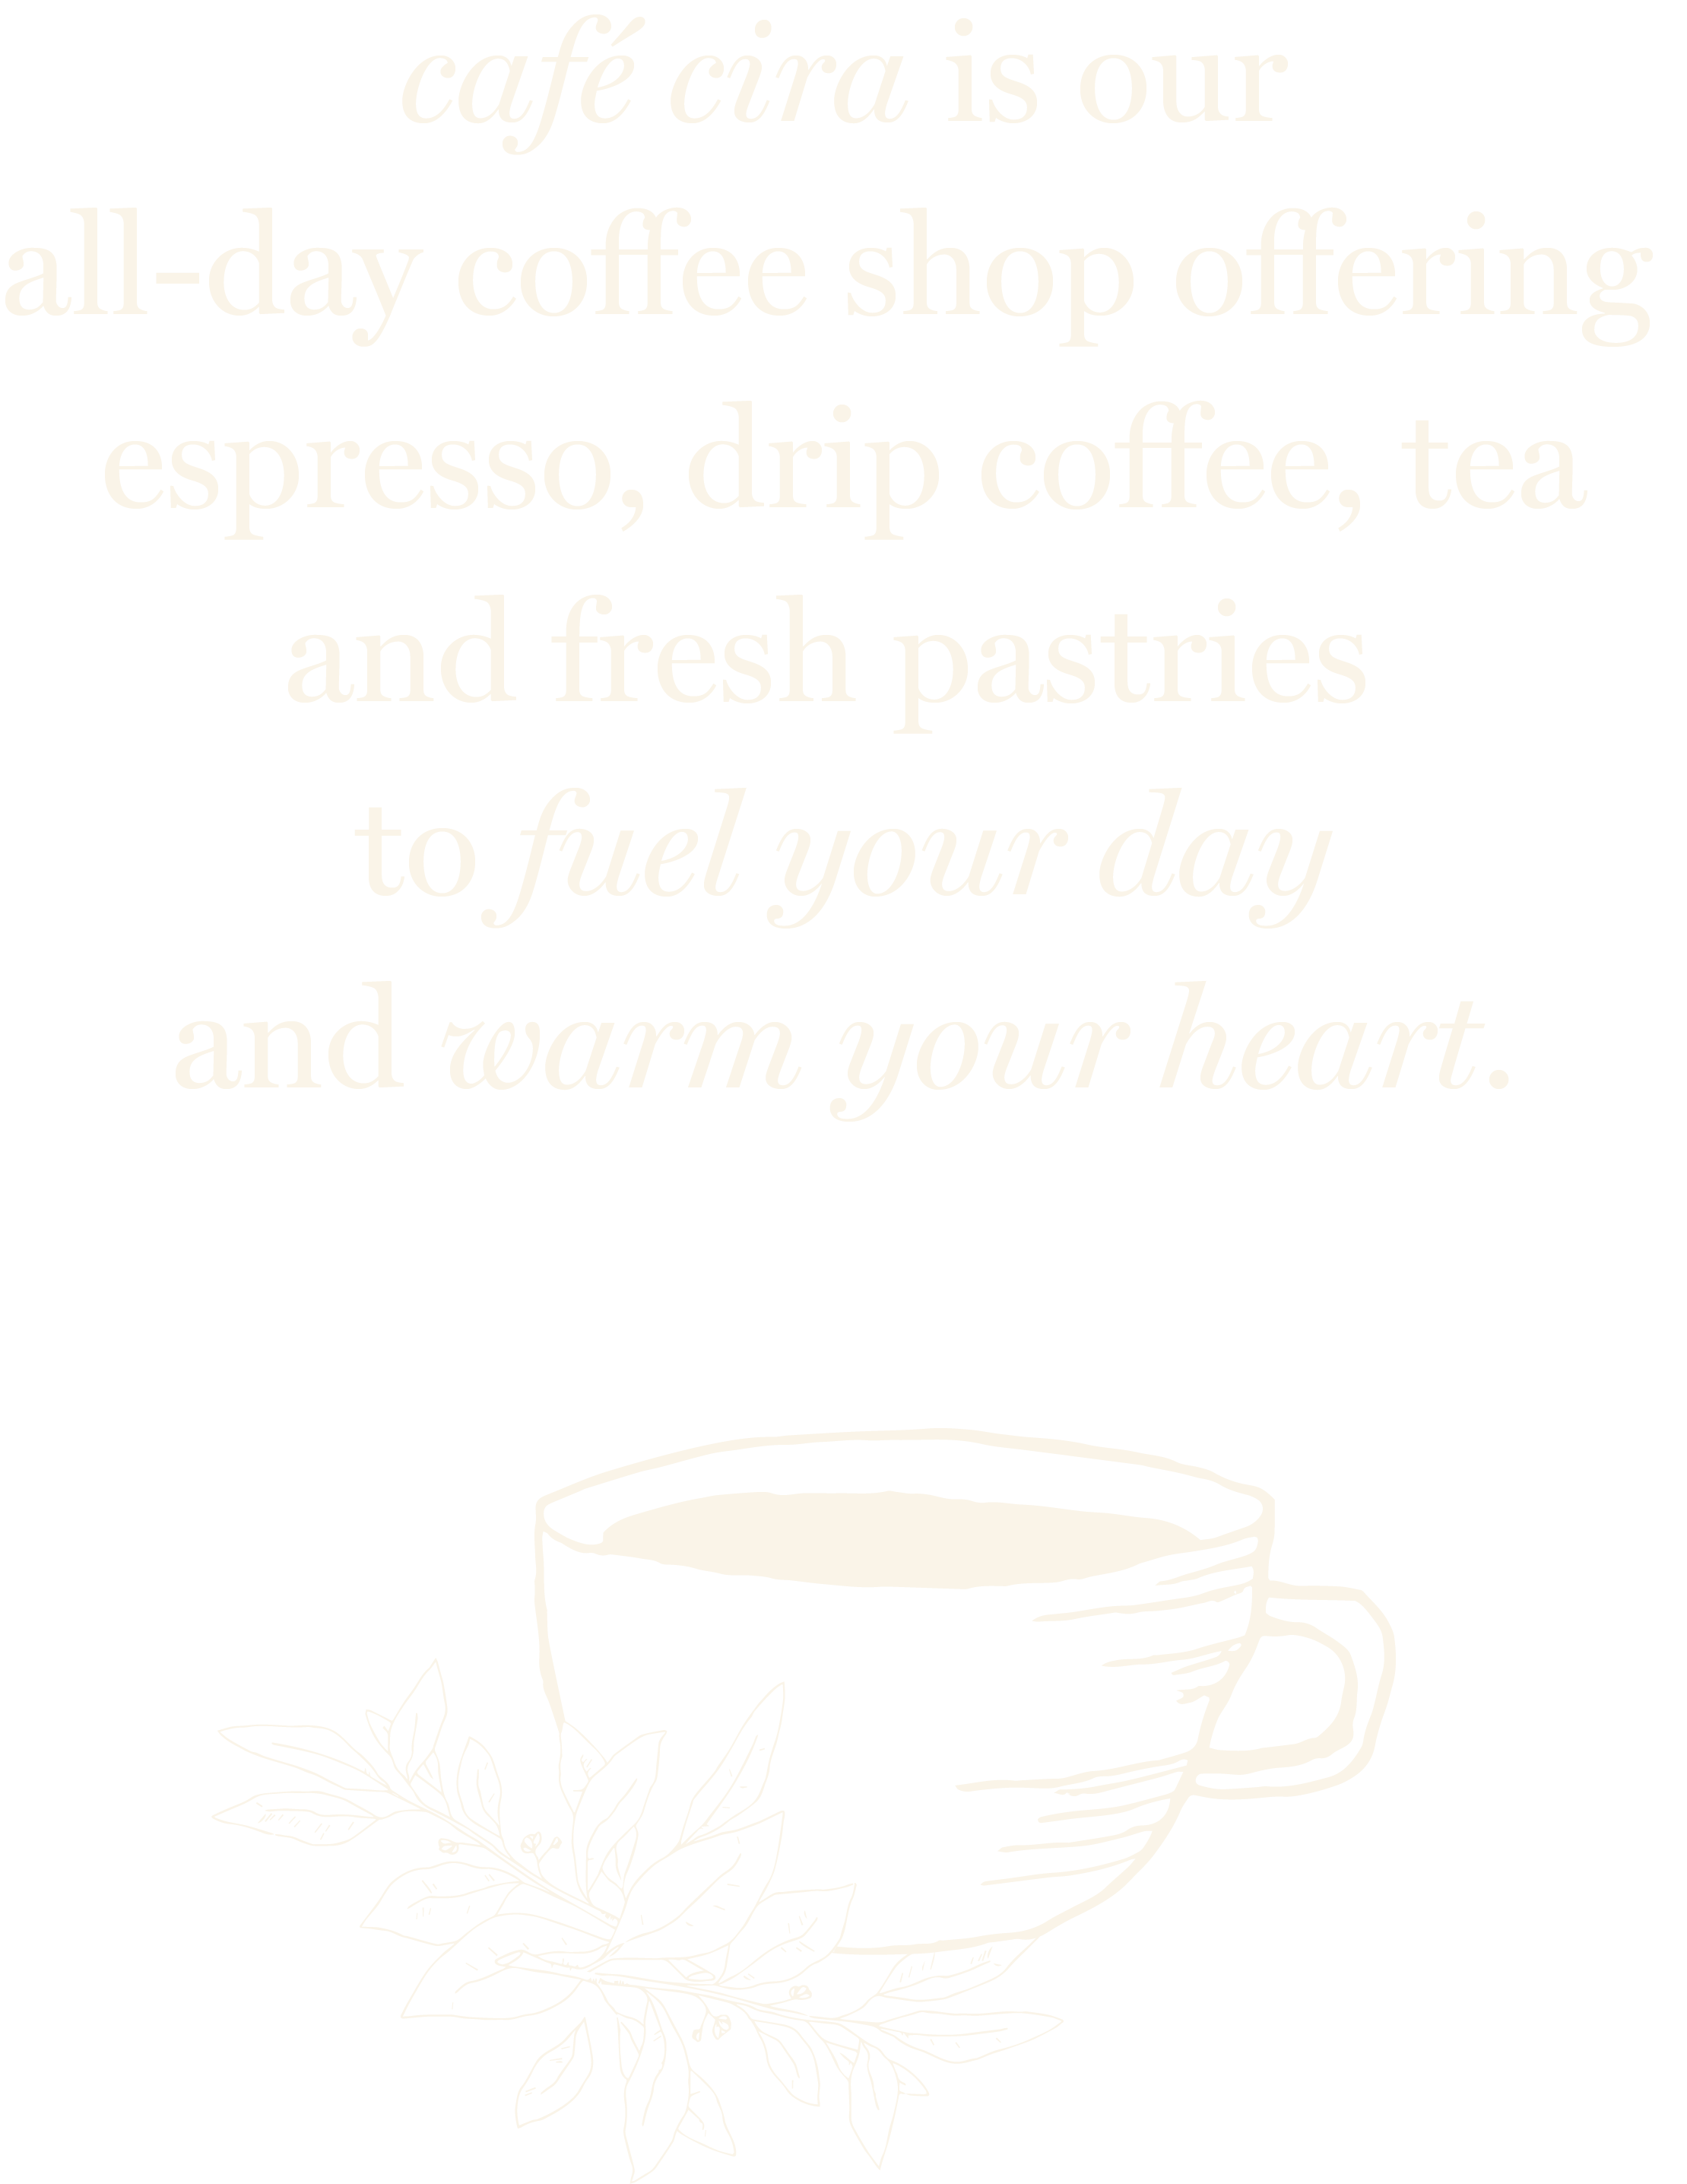 cafe cira website 1.png